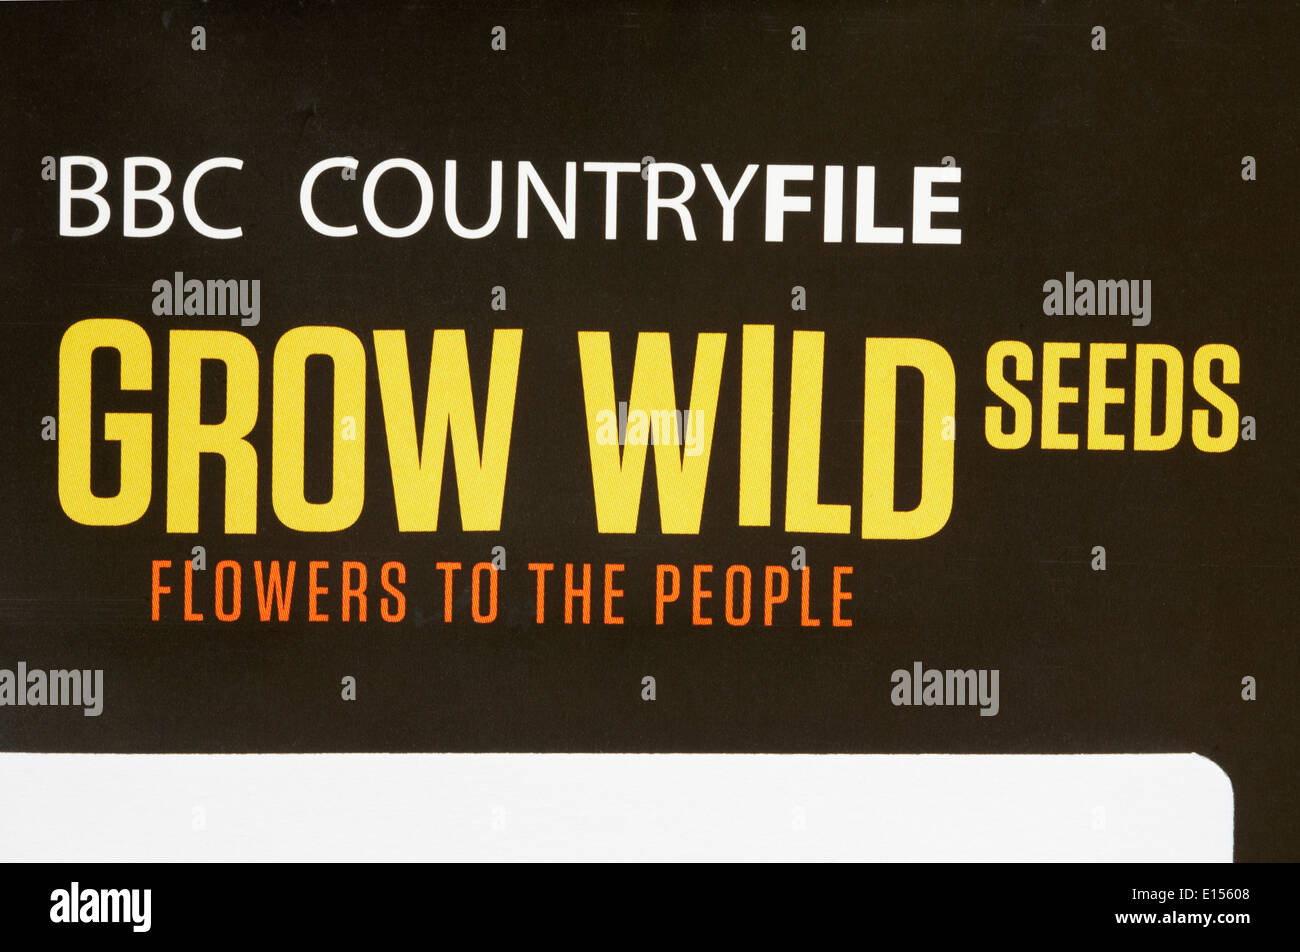 BBC Countryfile grow wild seeds flowers to the people - details on envelope with free wildflower seeds - Stock Image